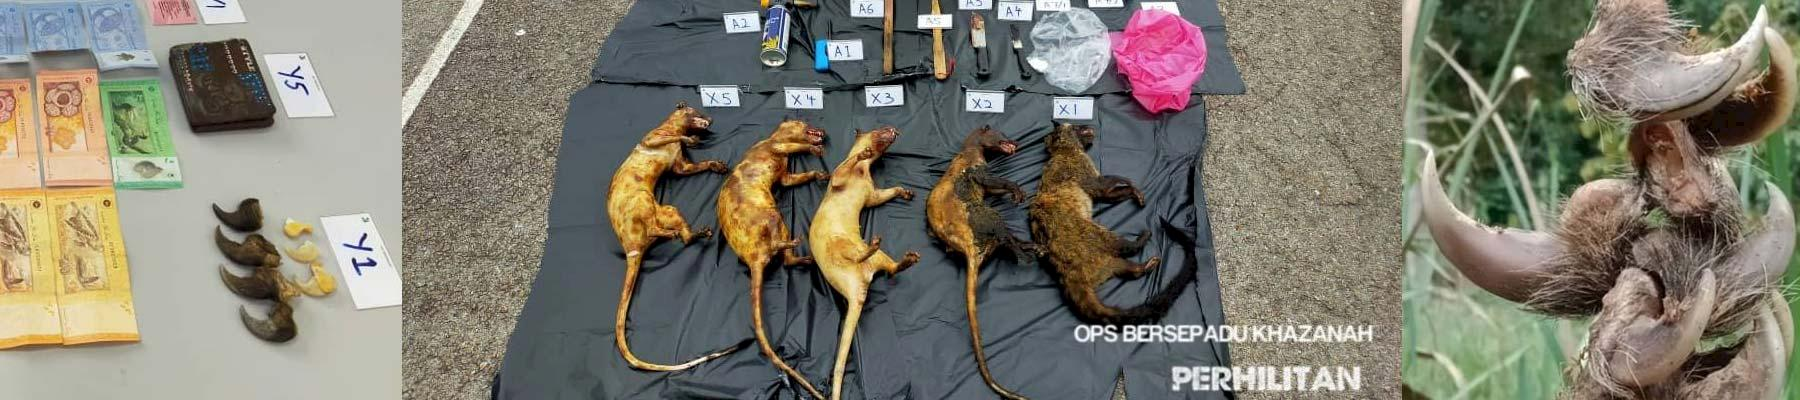 Some of the seized wildlife parts and assets  © Perhilitan